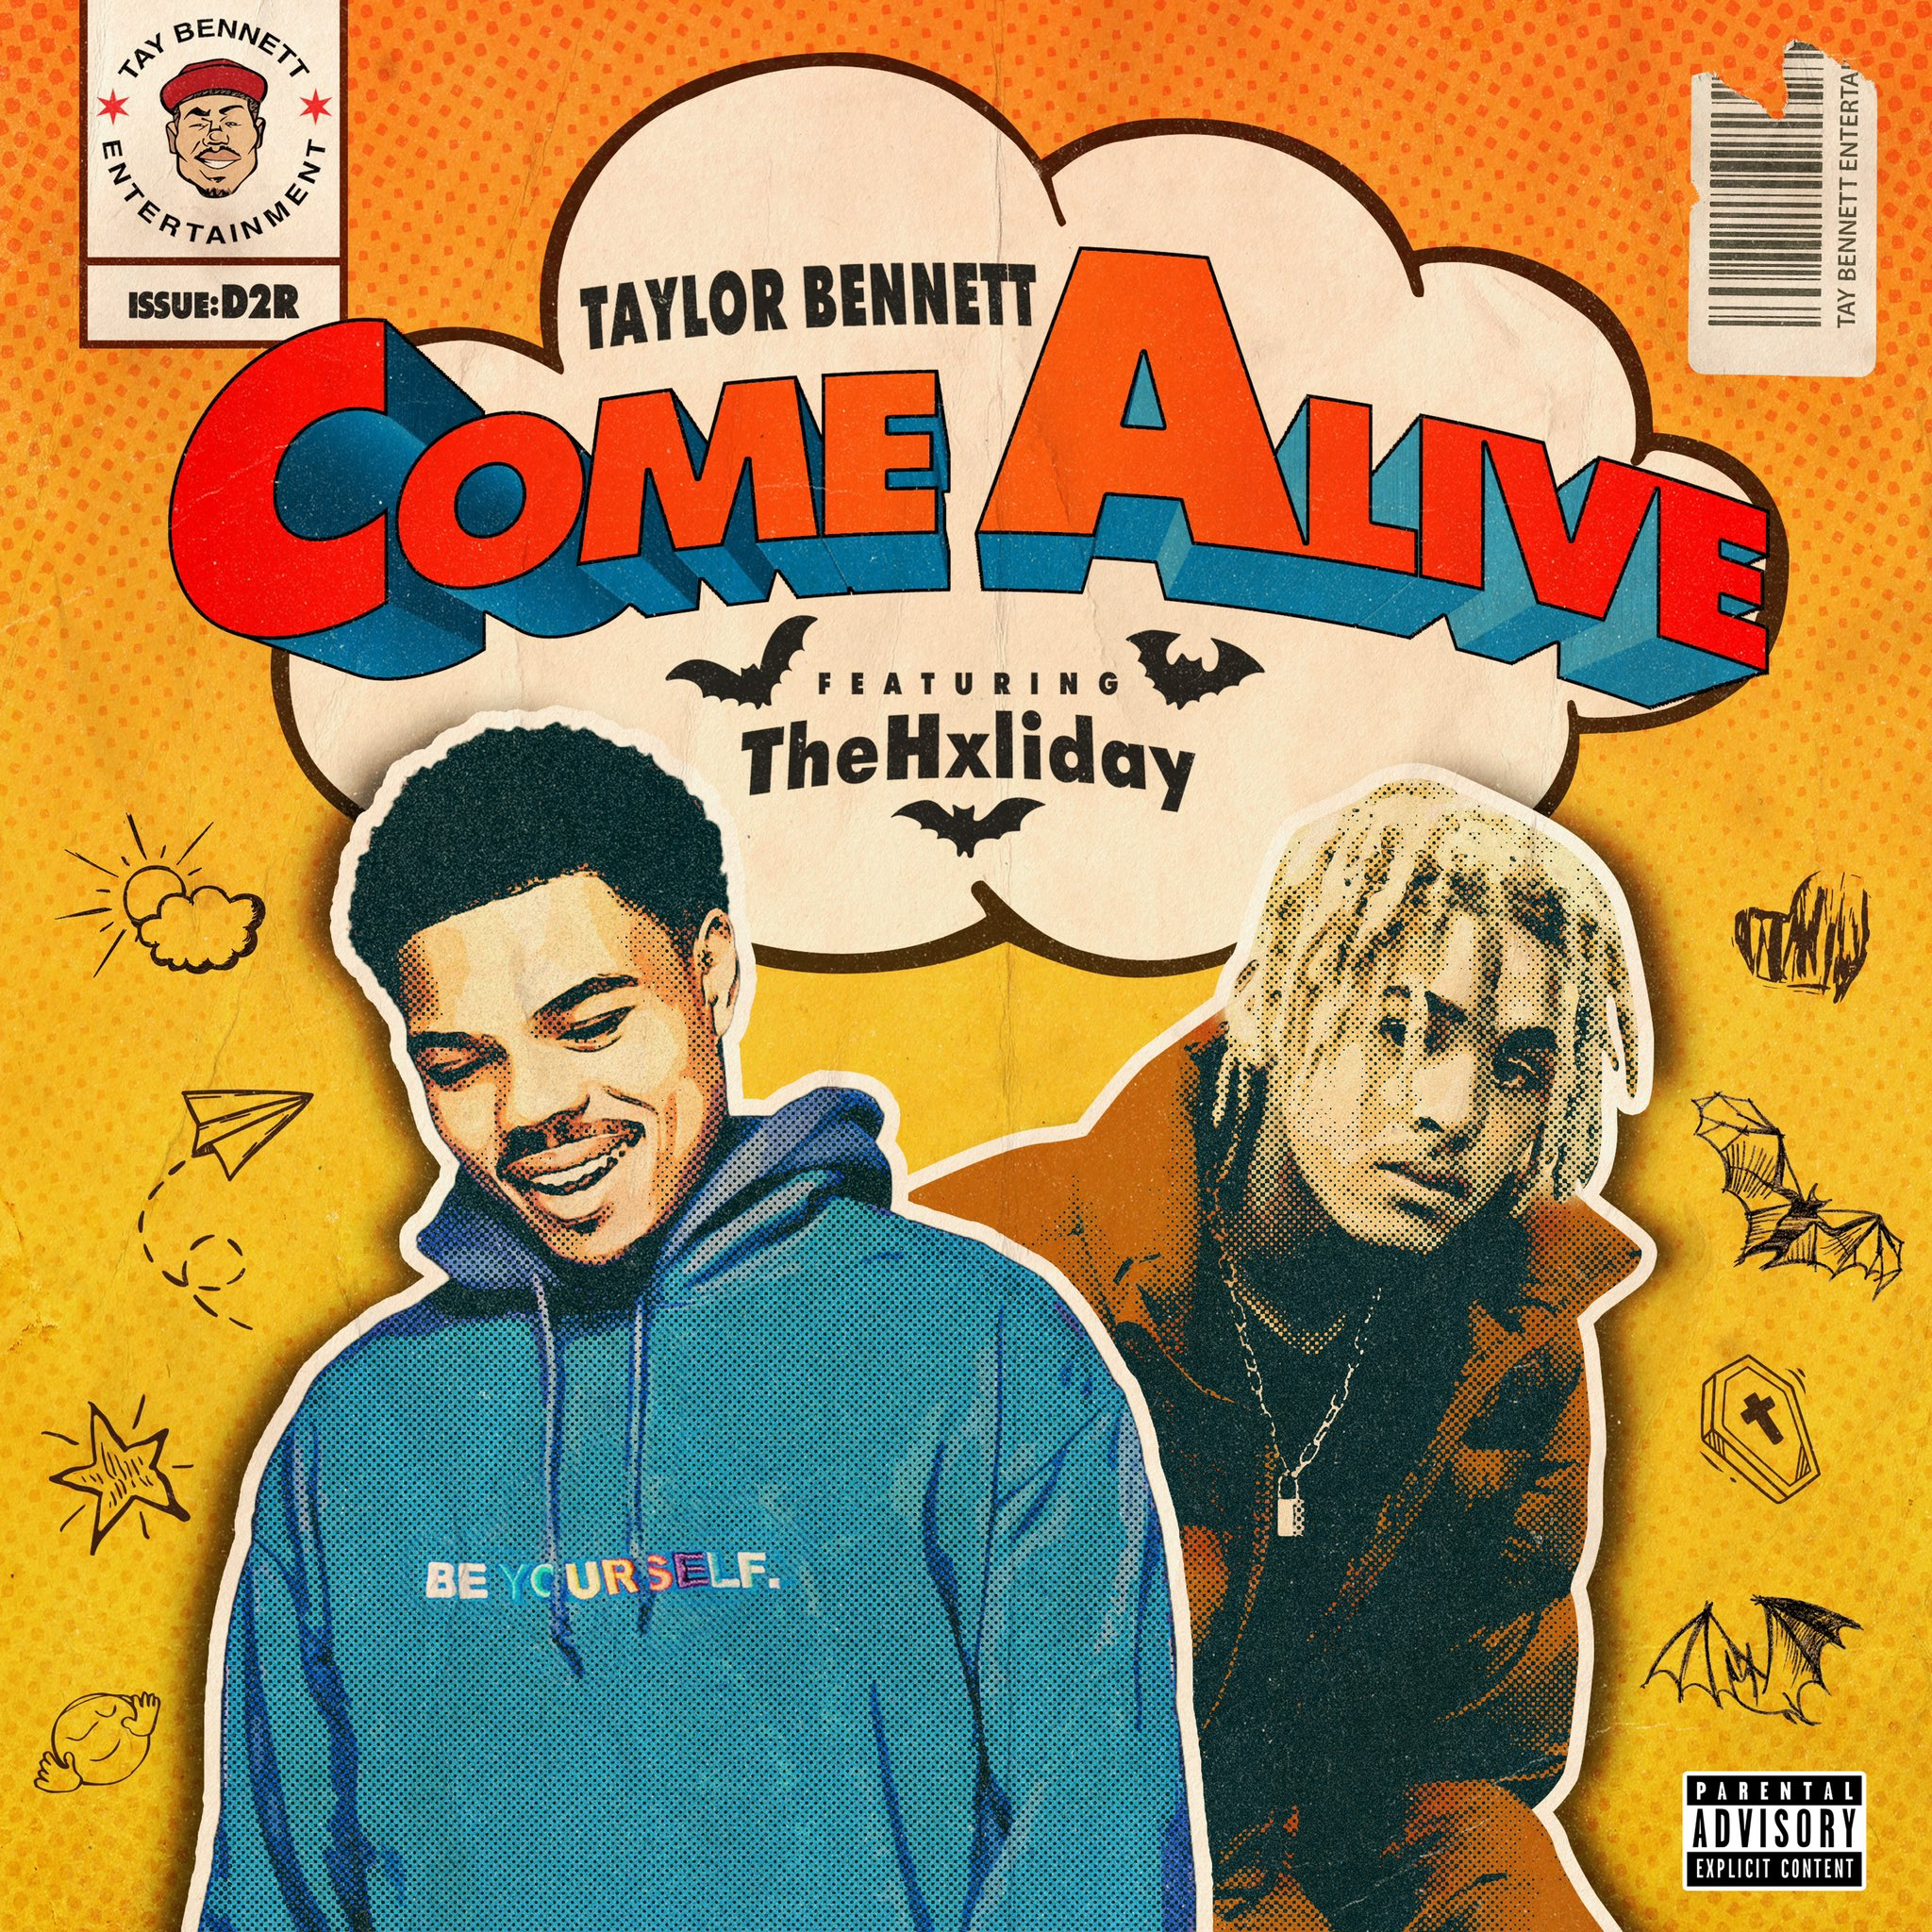 Come Alive – [Taylor Bennett] ft. [TheHxliday]